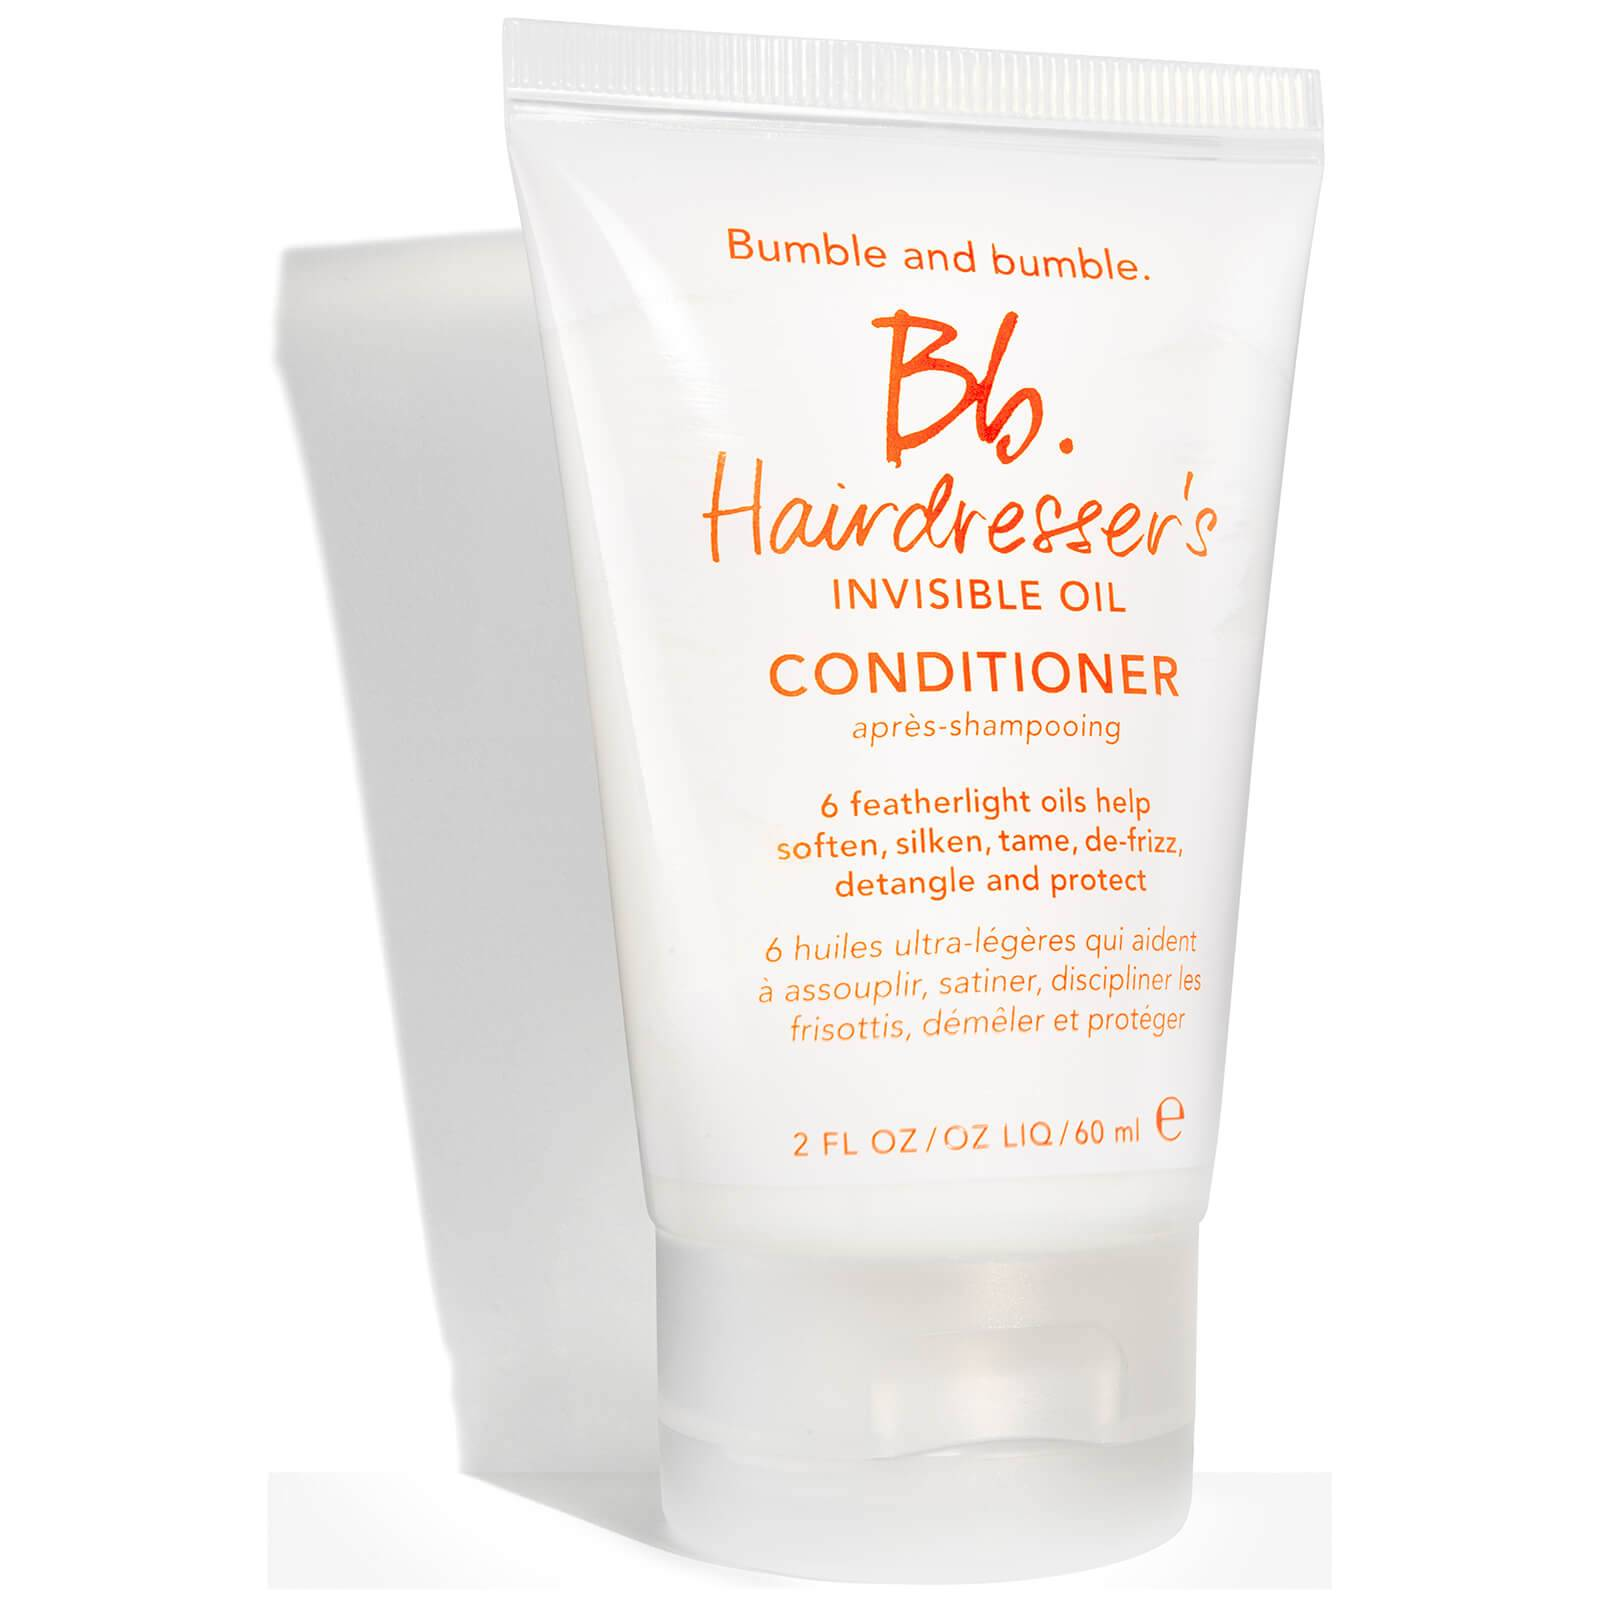 Bumble and bumble Hairdressers Invisible Oil Conditioner